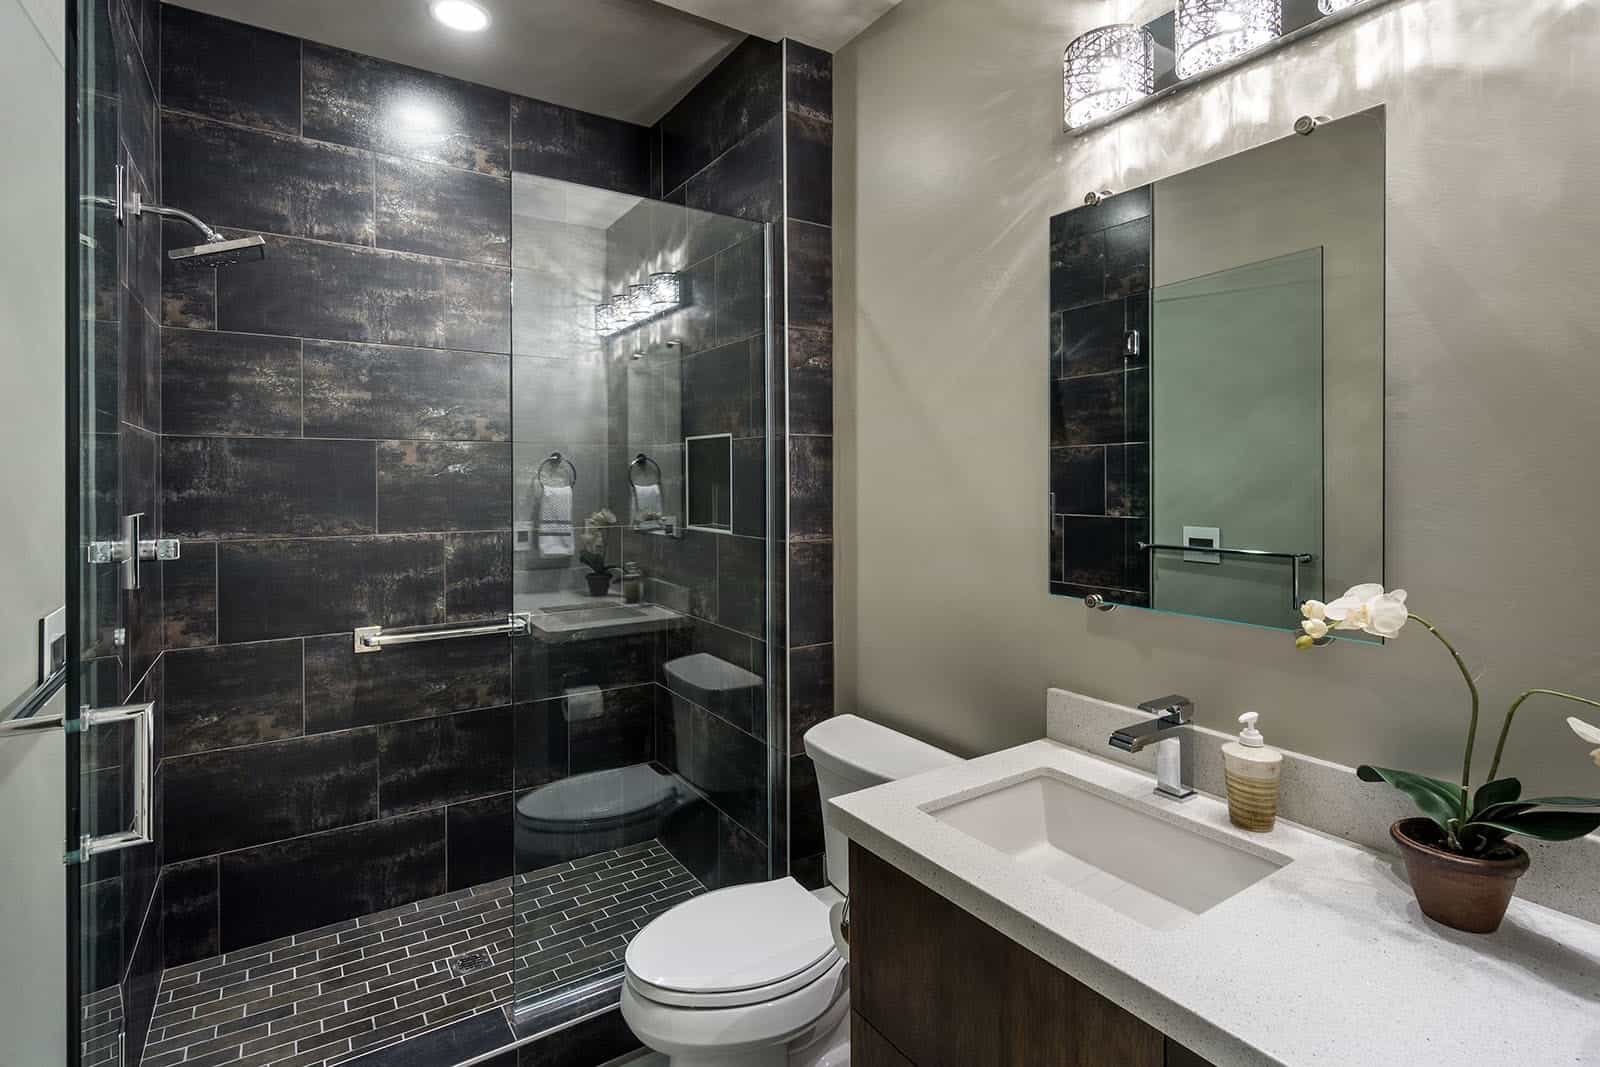 Dark Marble Wall And Light Countertop Creates Sharp Contrast In Contemporary Bathroom (Image 6 of 10)